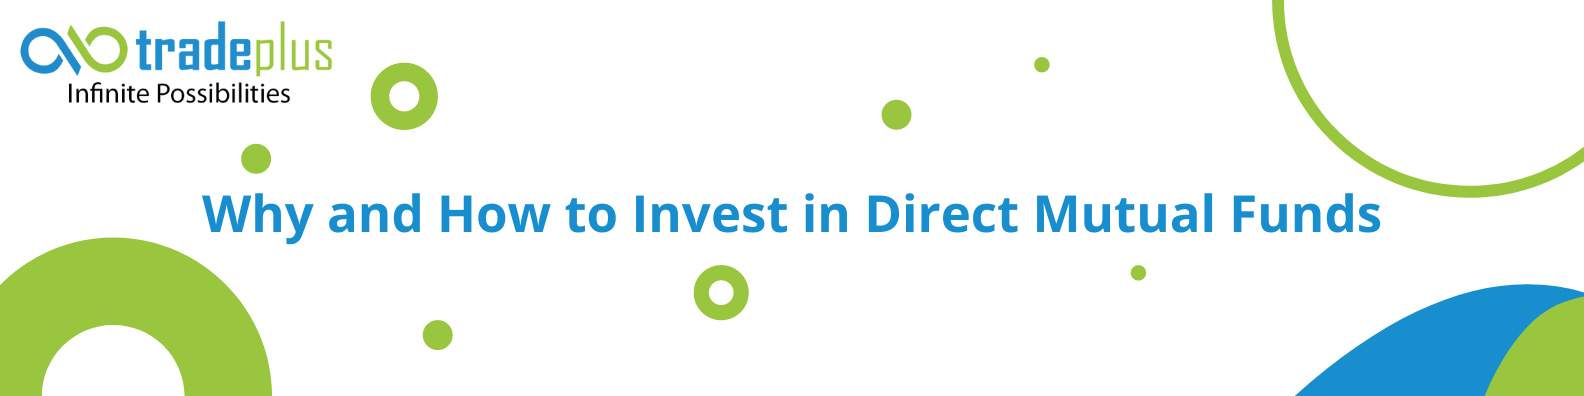 Why and how to invest in direct mutual funds Why and How to Invest in Direct Mutual Funds